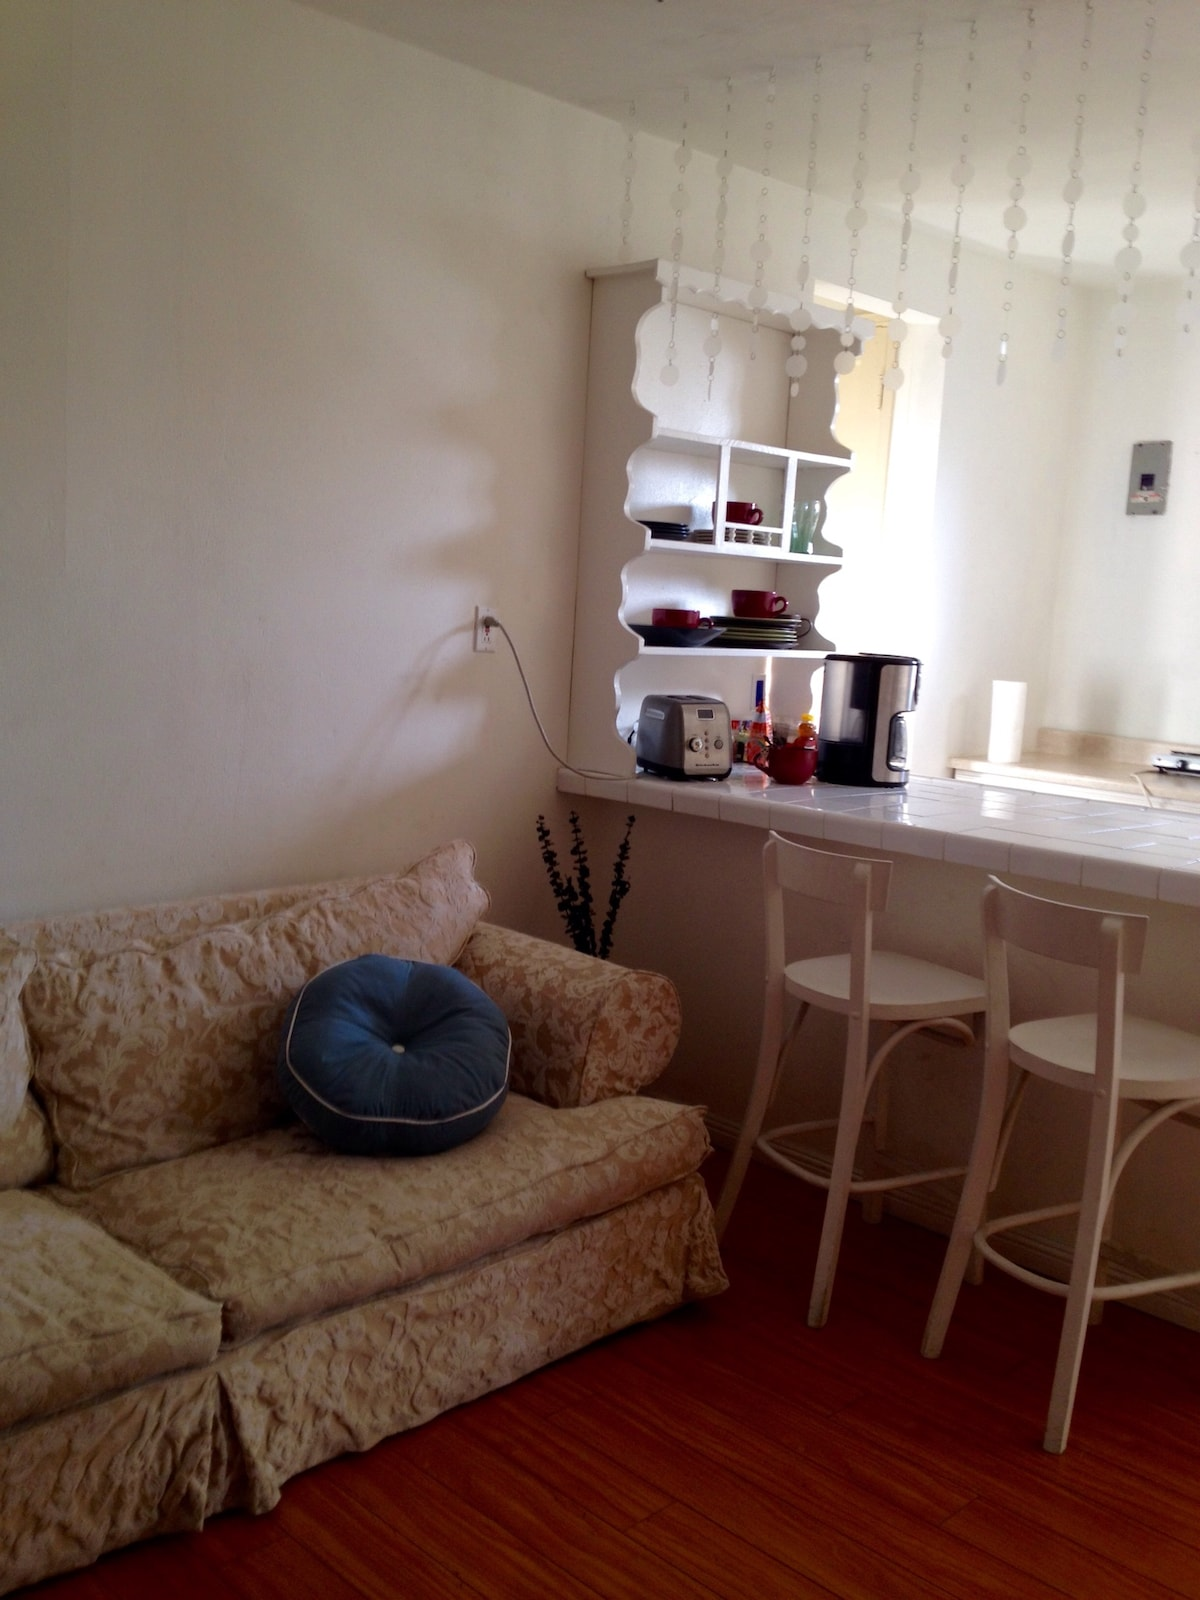 Full couch ~ Down Filled. Could be for extra person. Nice cooking area. & workspace,  too.